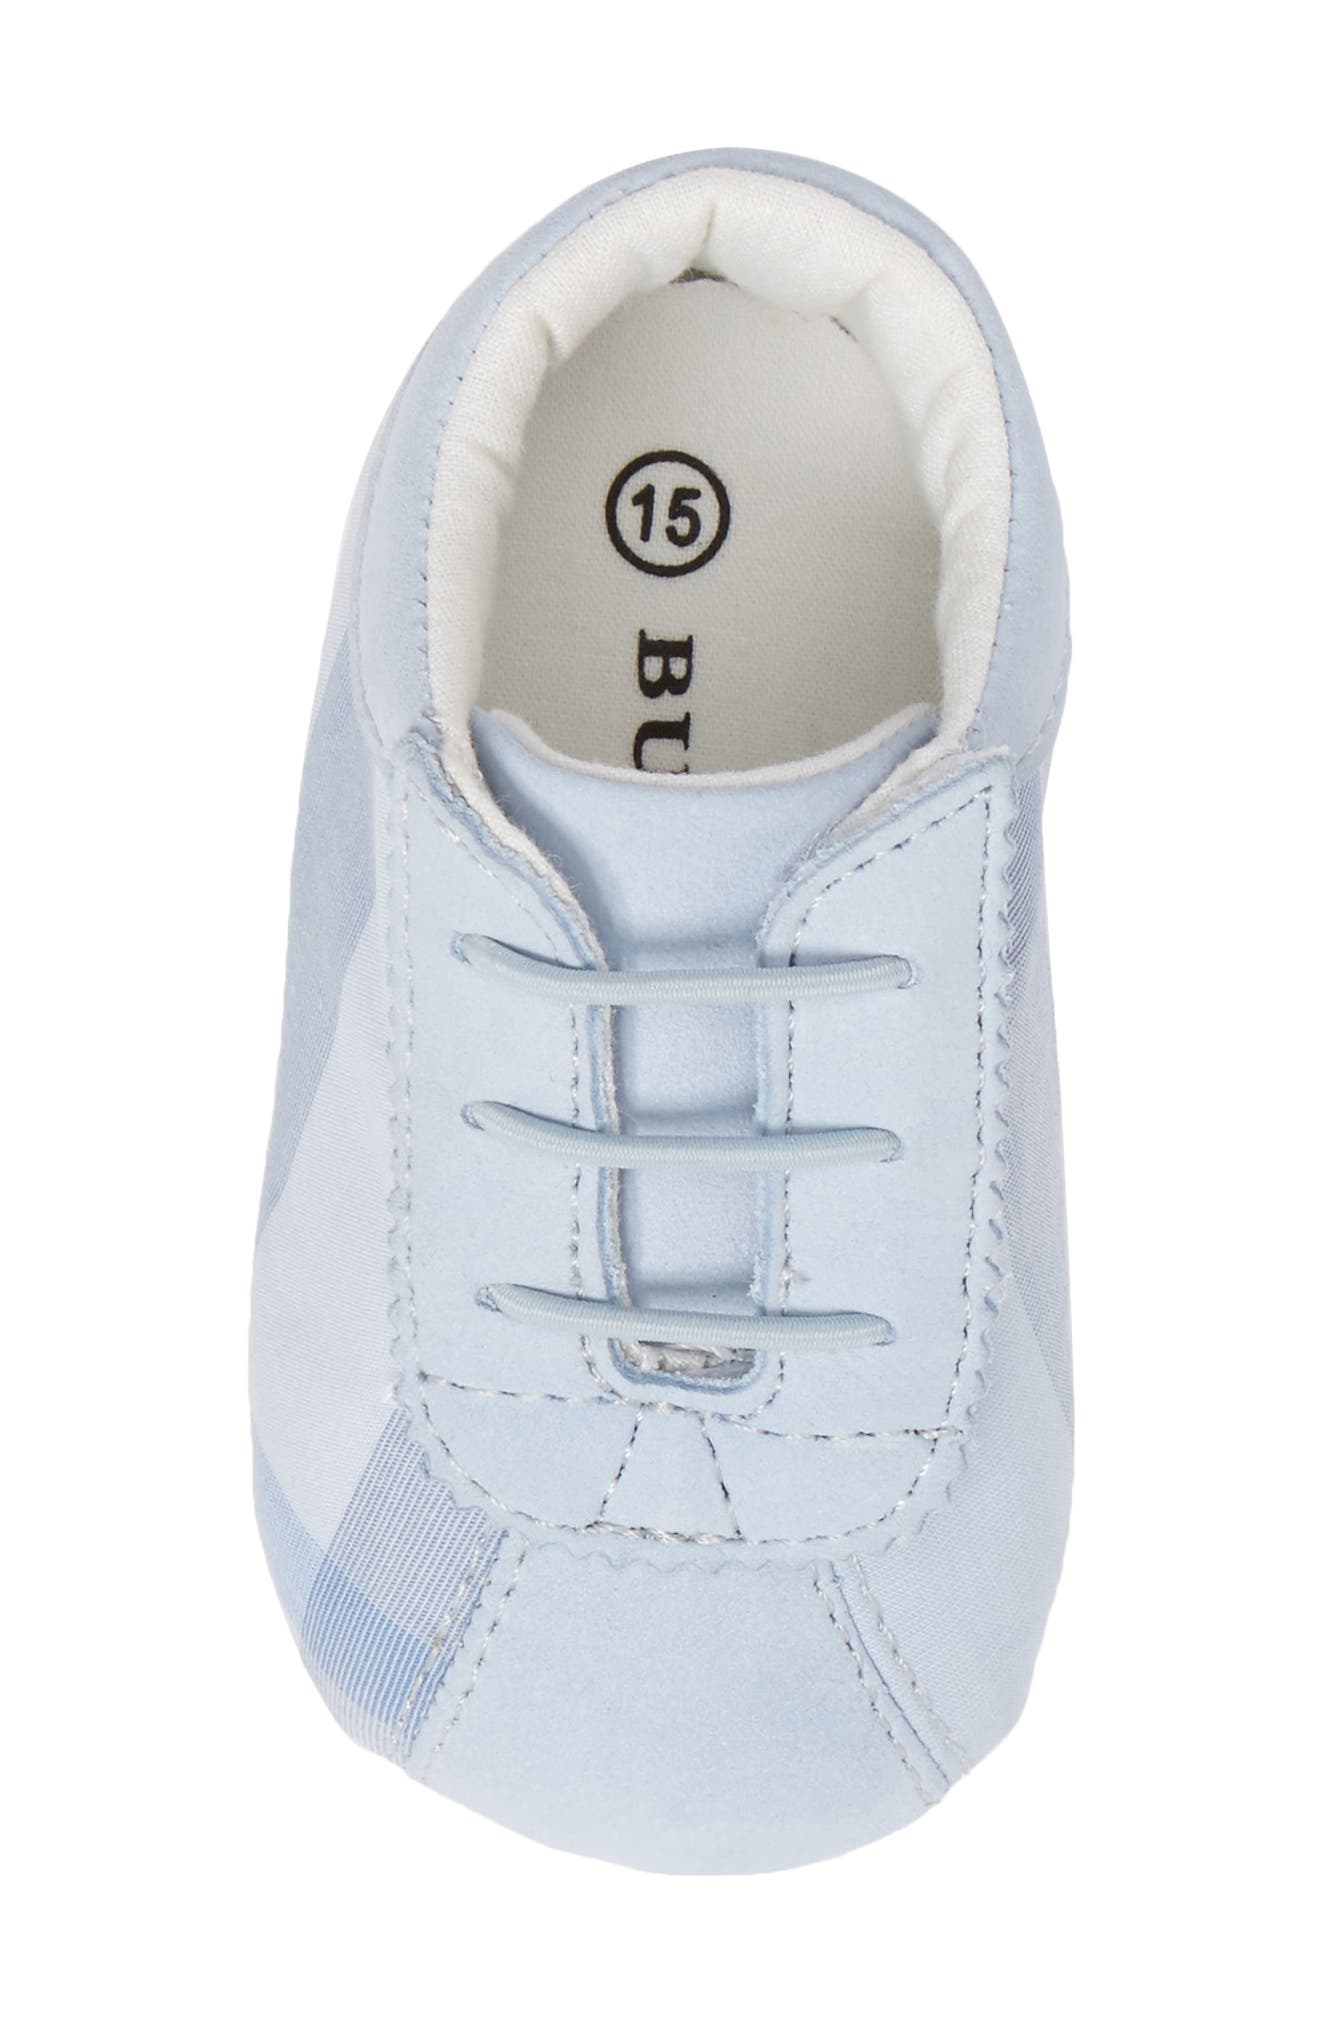 'Bosco' Crib Shoe,                             Alternate thumbnail 5, color,                             Ice Blue